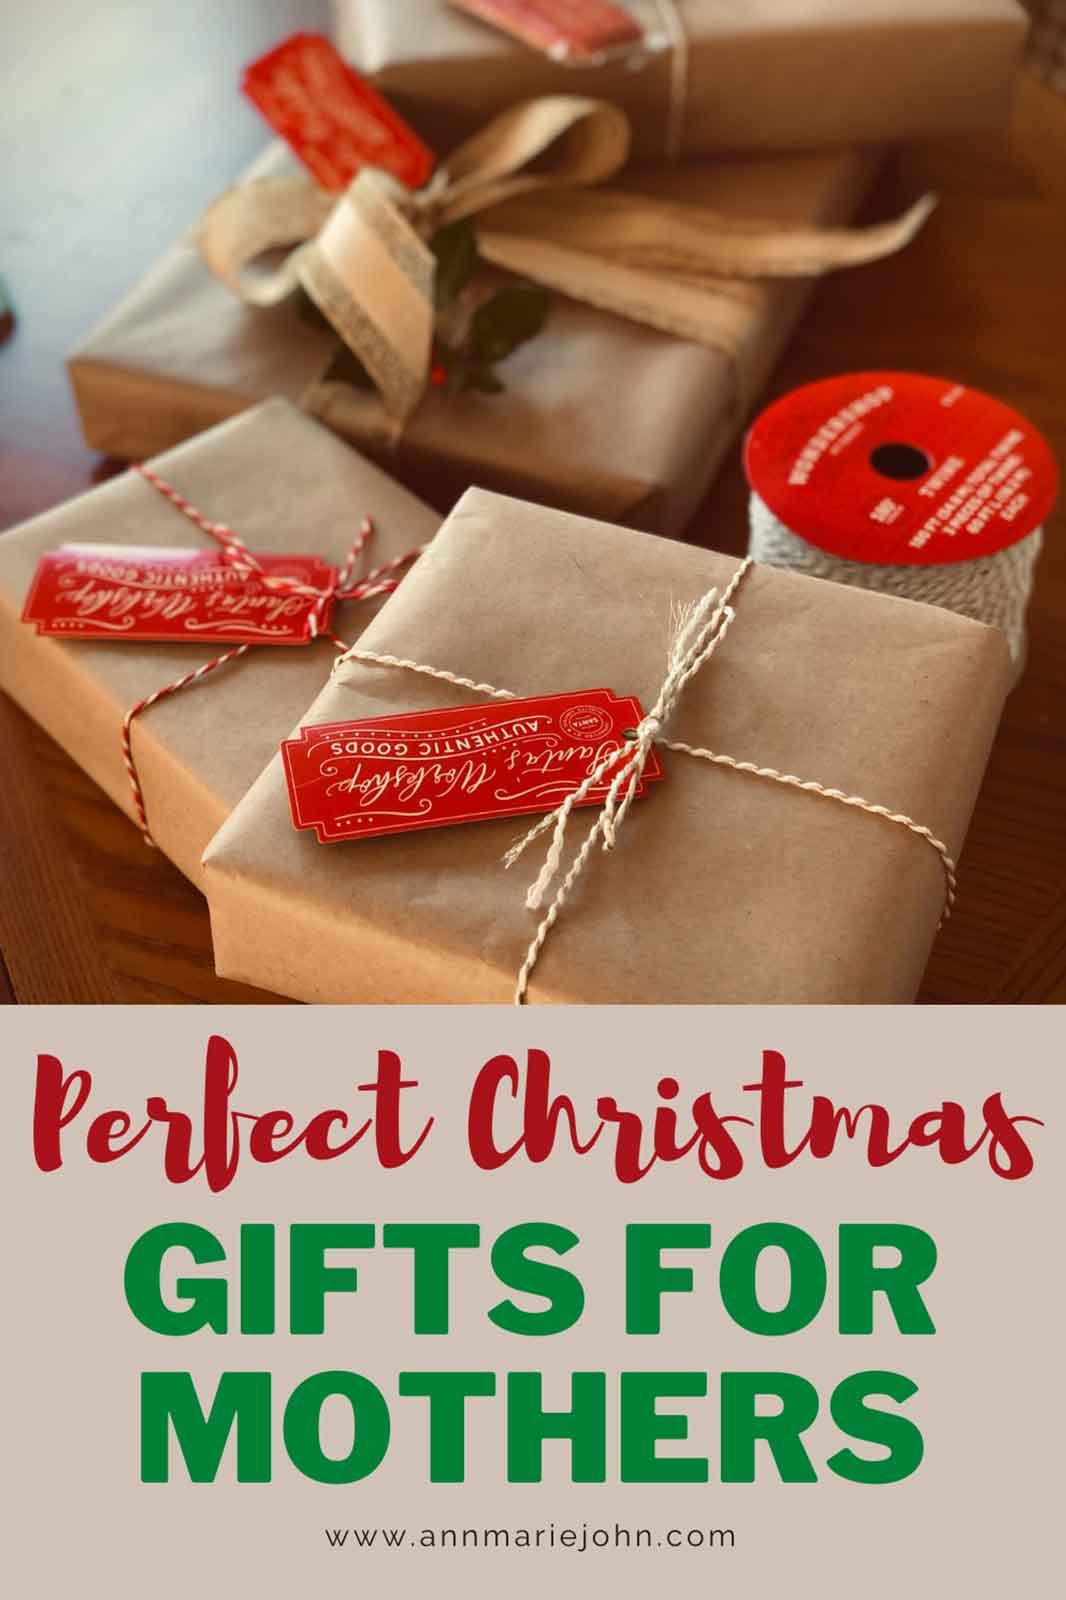 Perfect Christmas Gift Ideas for Mothers